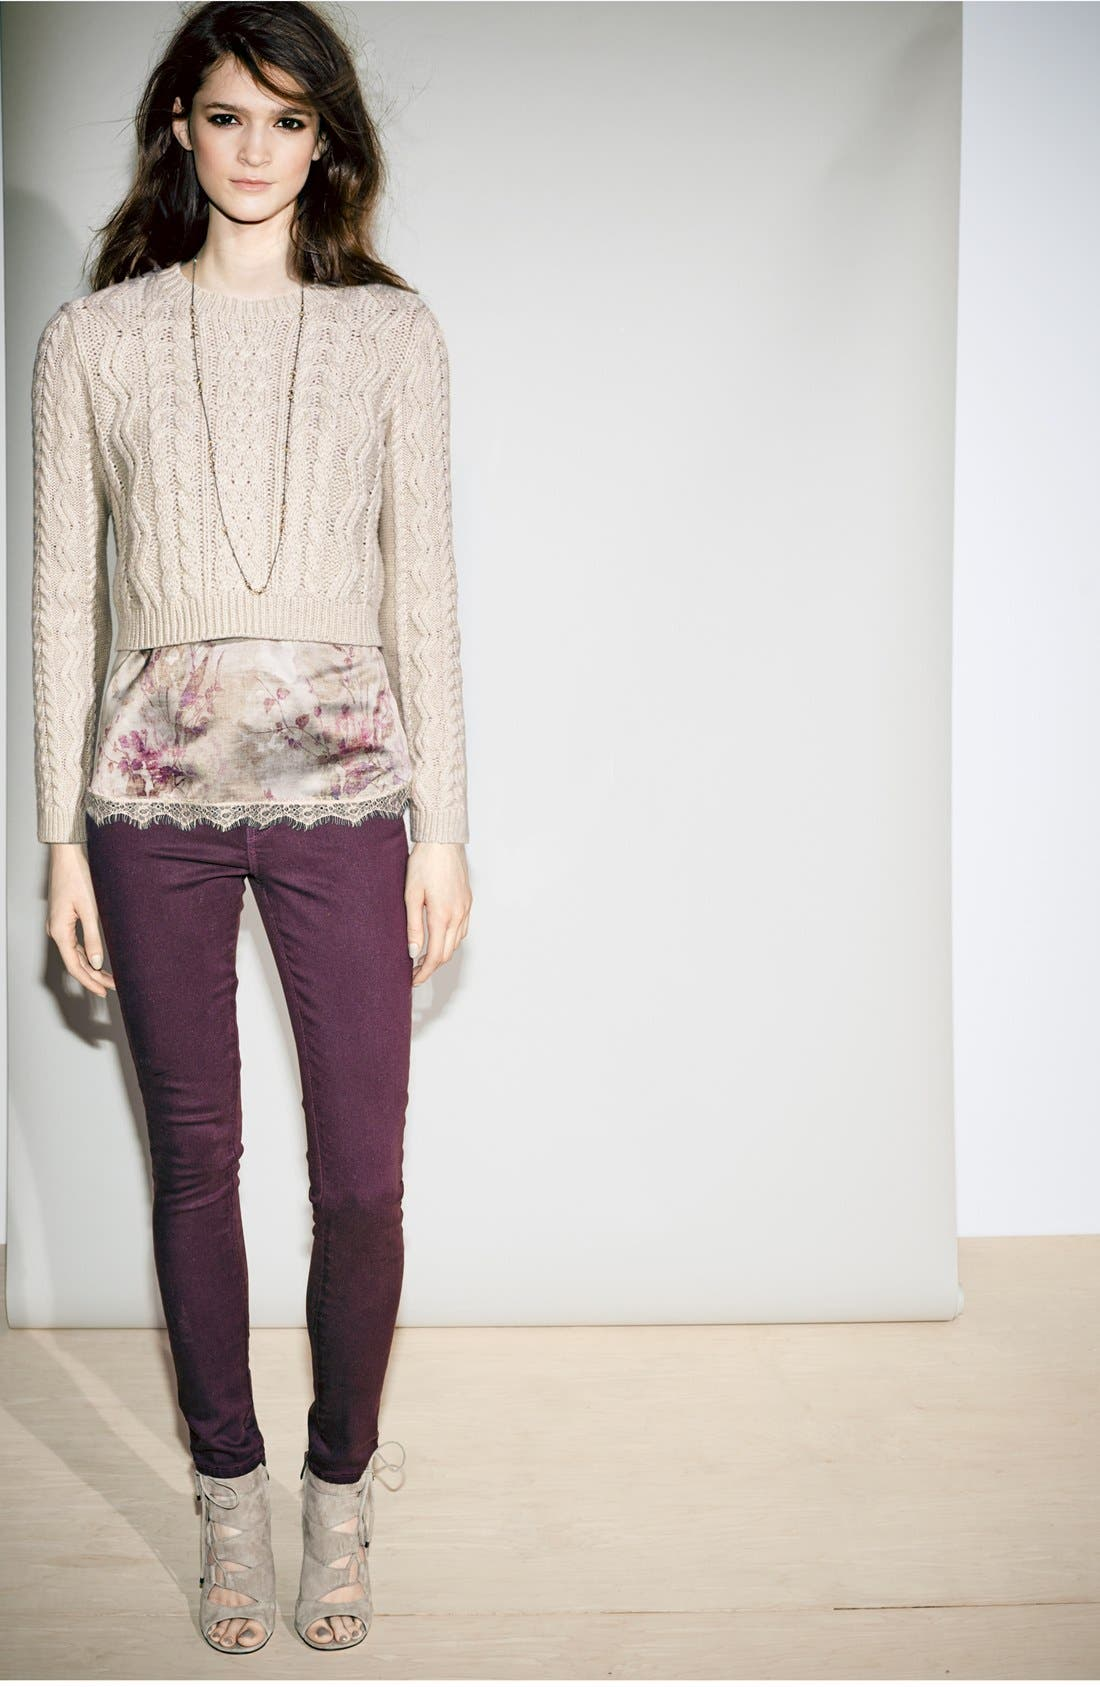 CHELSEA28,                             Cabled Crop Sweater,                             Alternate thumbnail 7, color,                             020